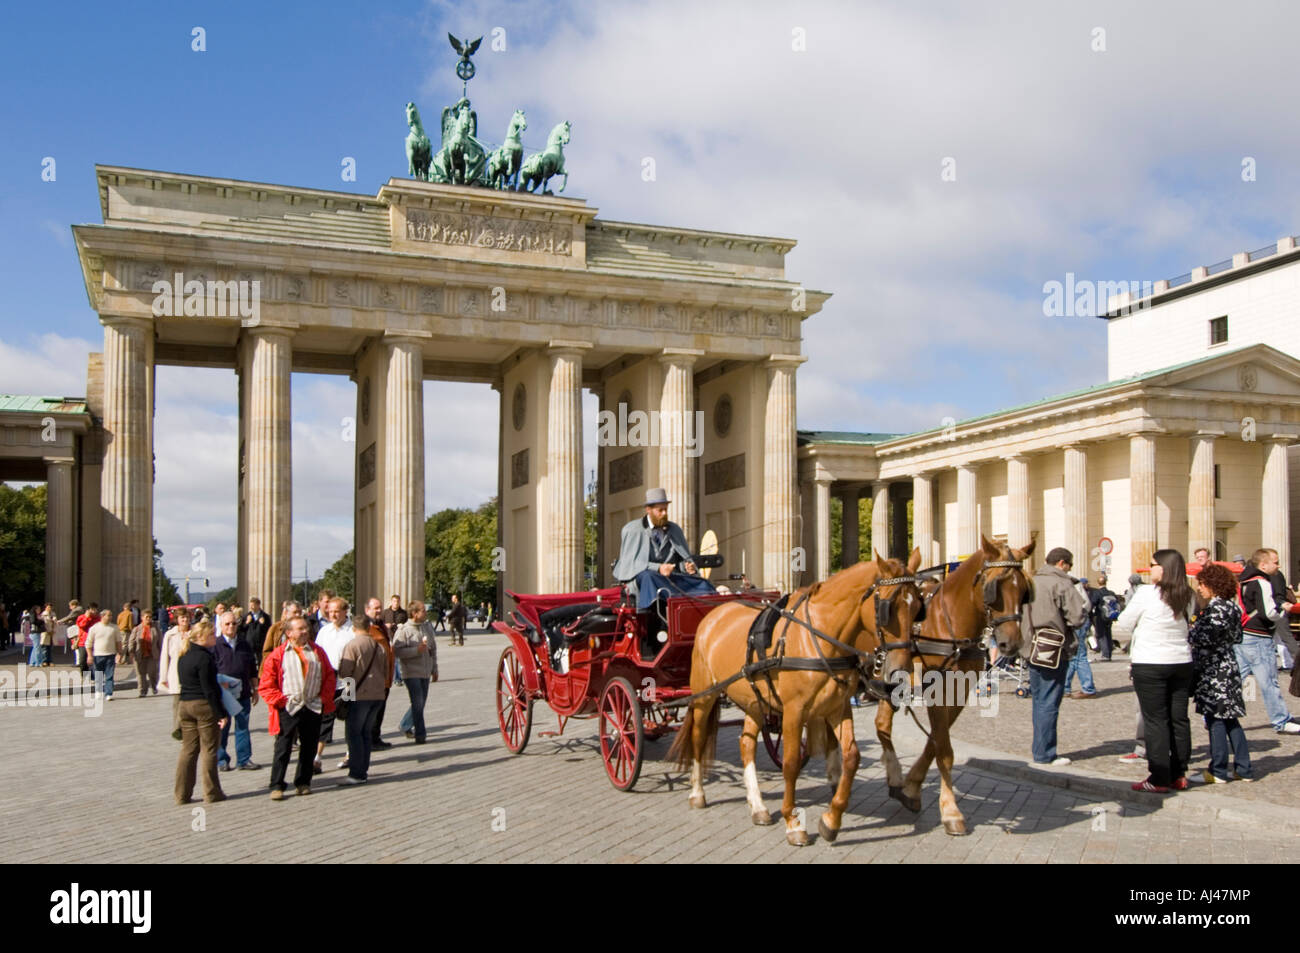 A wide angle view of tourists and traditional horse and carriage at the Brandenburger Tor or Brandenburg Gate on - Stock Image